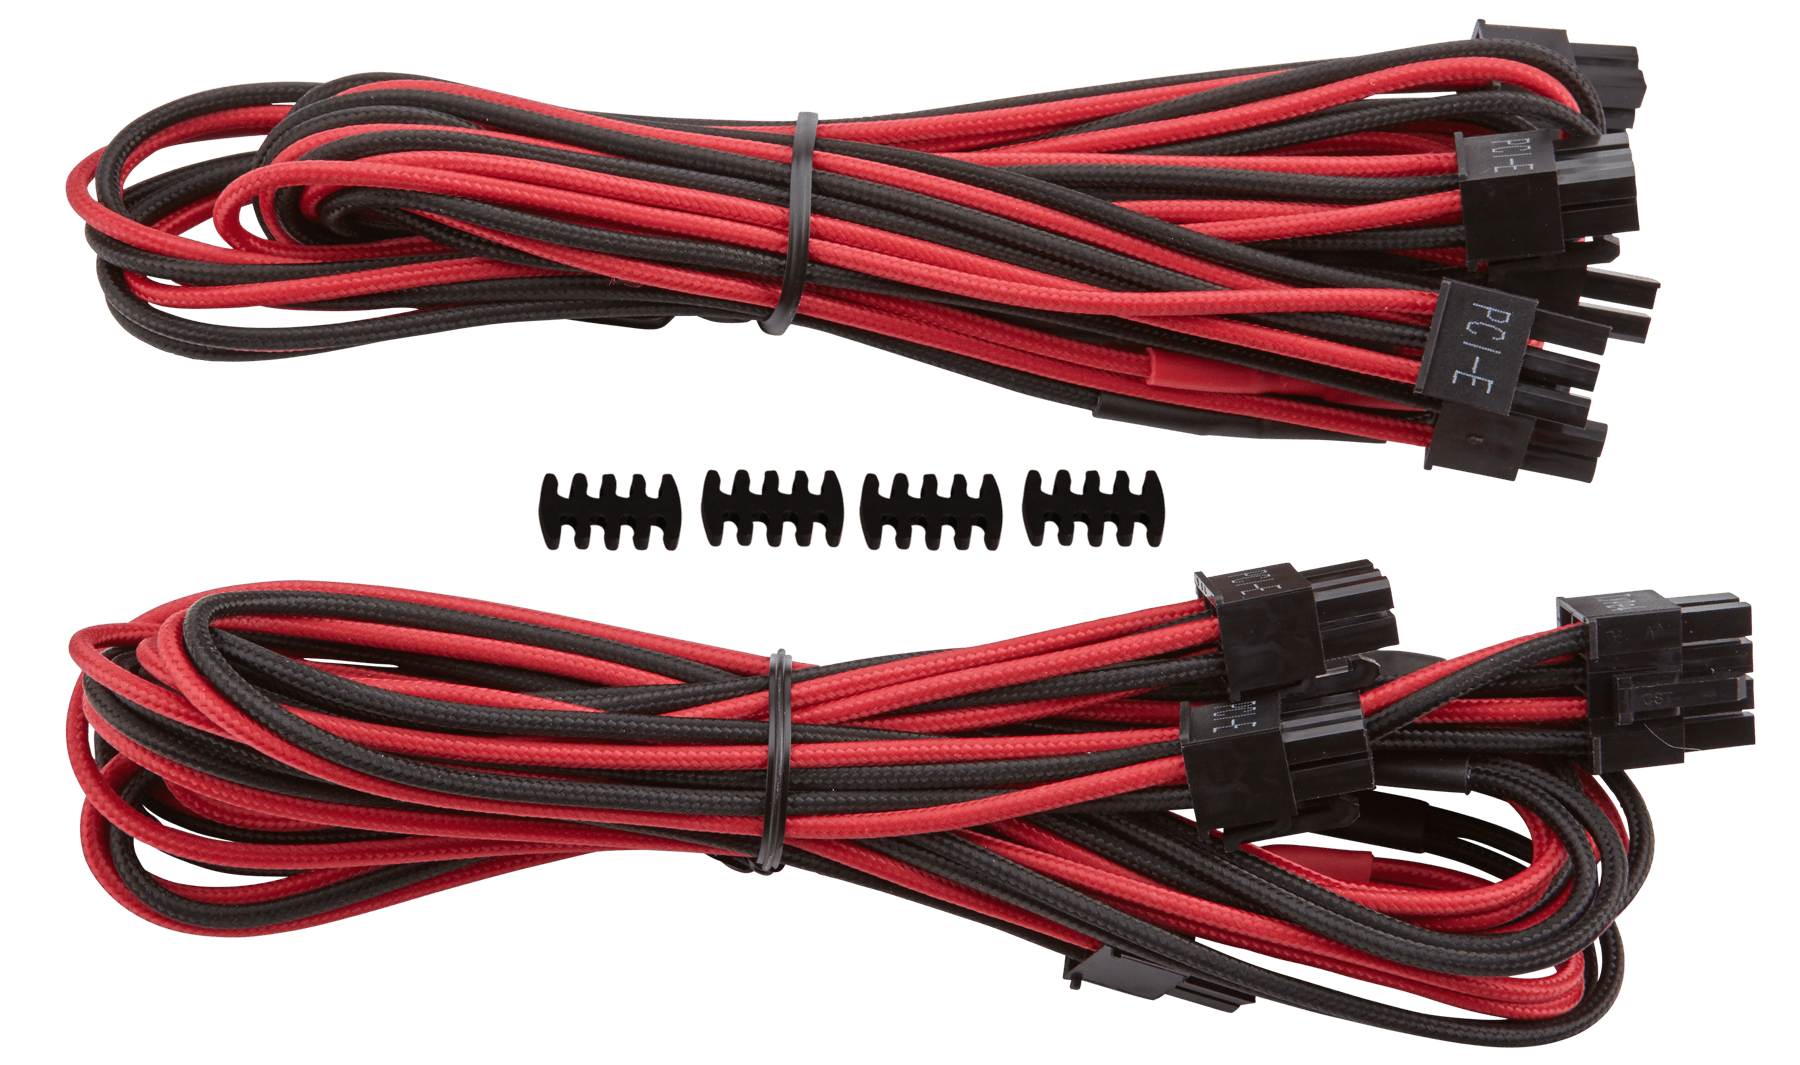 hight resolution of corsair premium individually sleeved type 4 generation 3 pcie cables with single connectors feature a flexible paracord sleeve and in line capacitors that